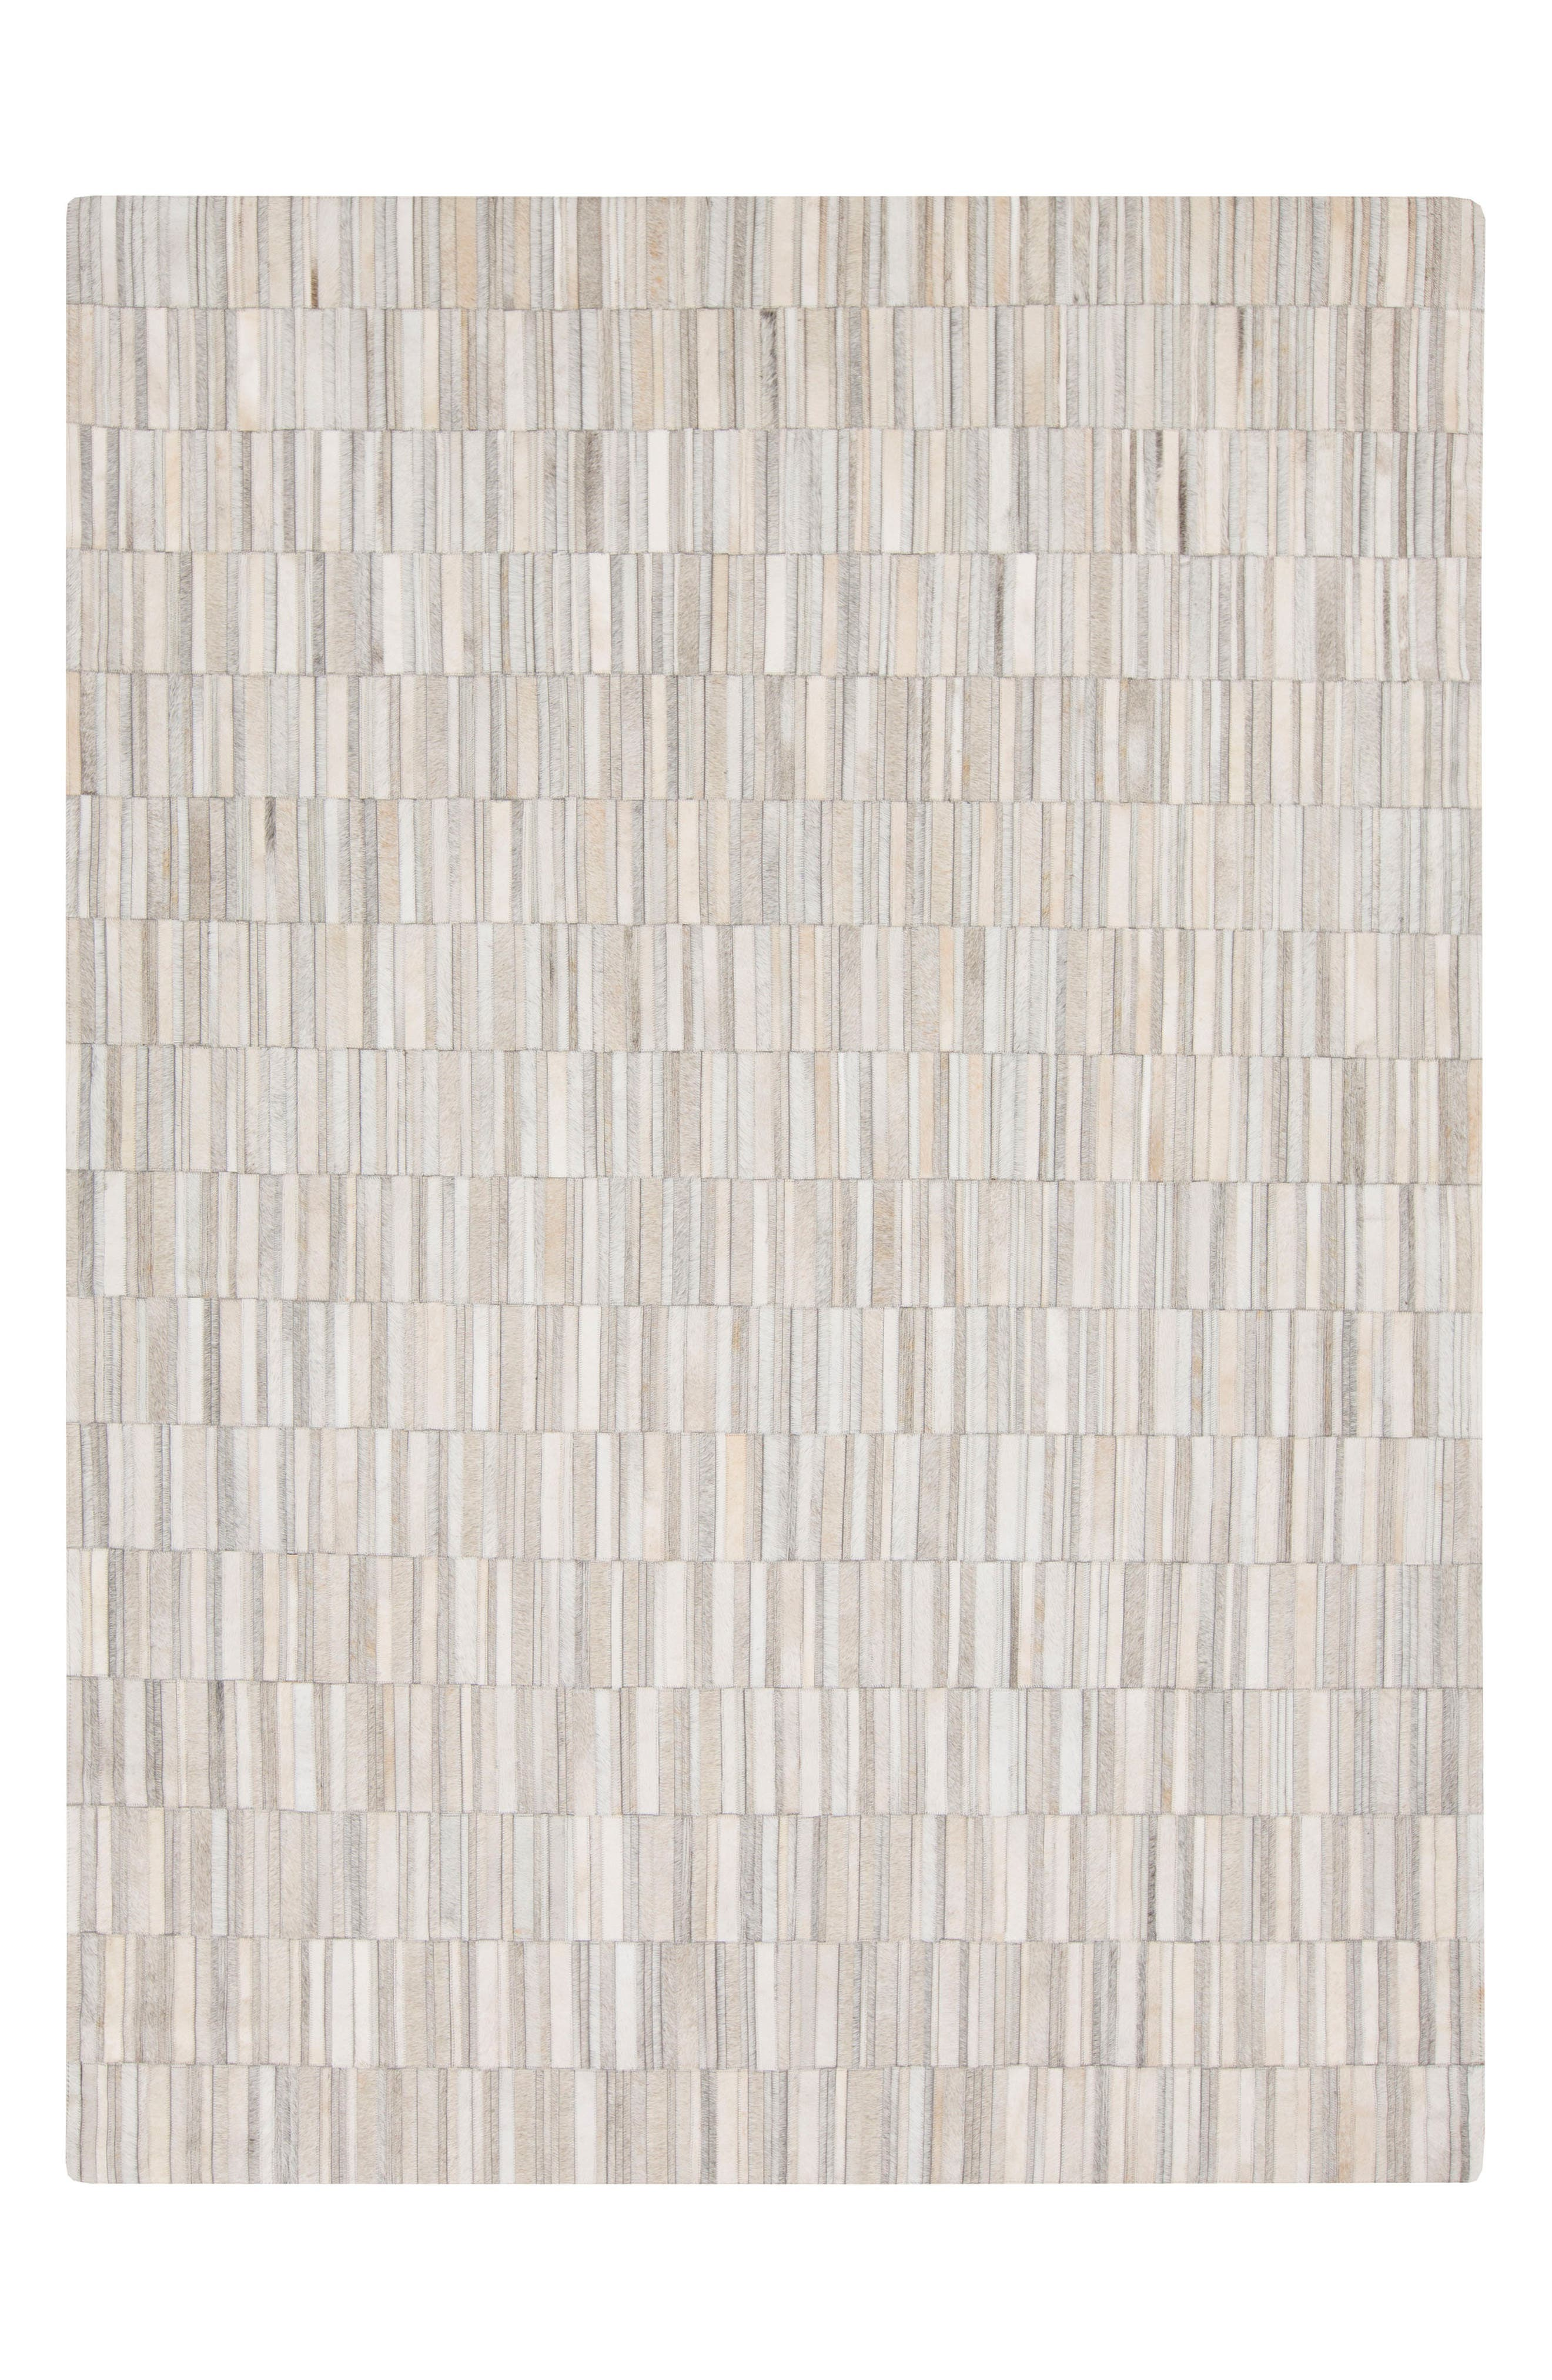 Outback Genuine Calf Hair Rug,                         Main,                         color, 250